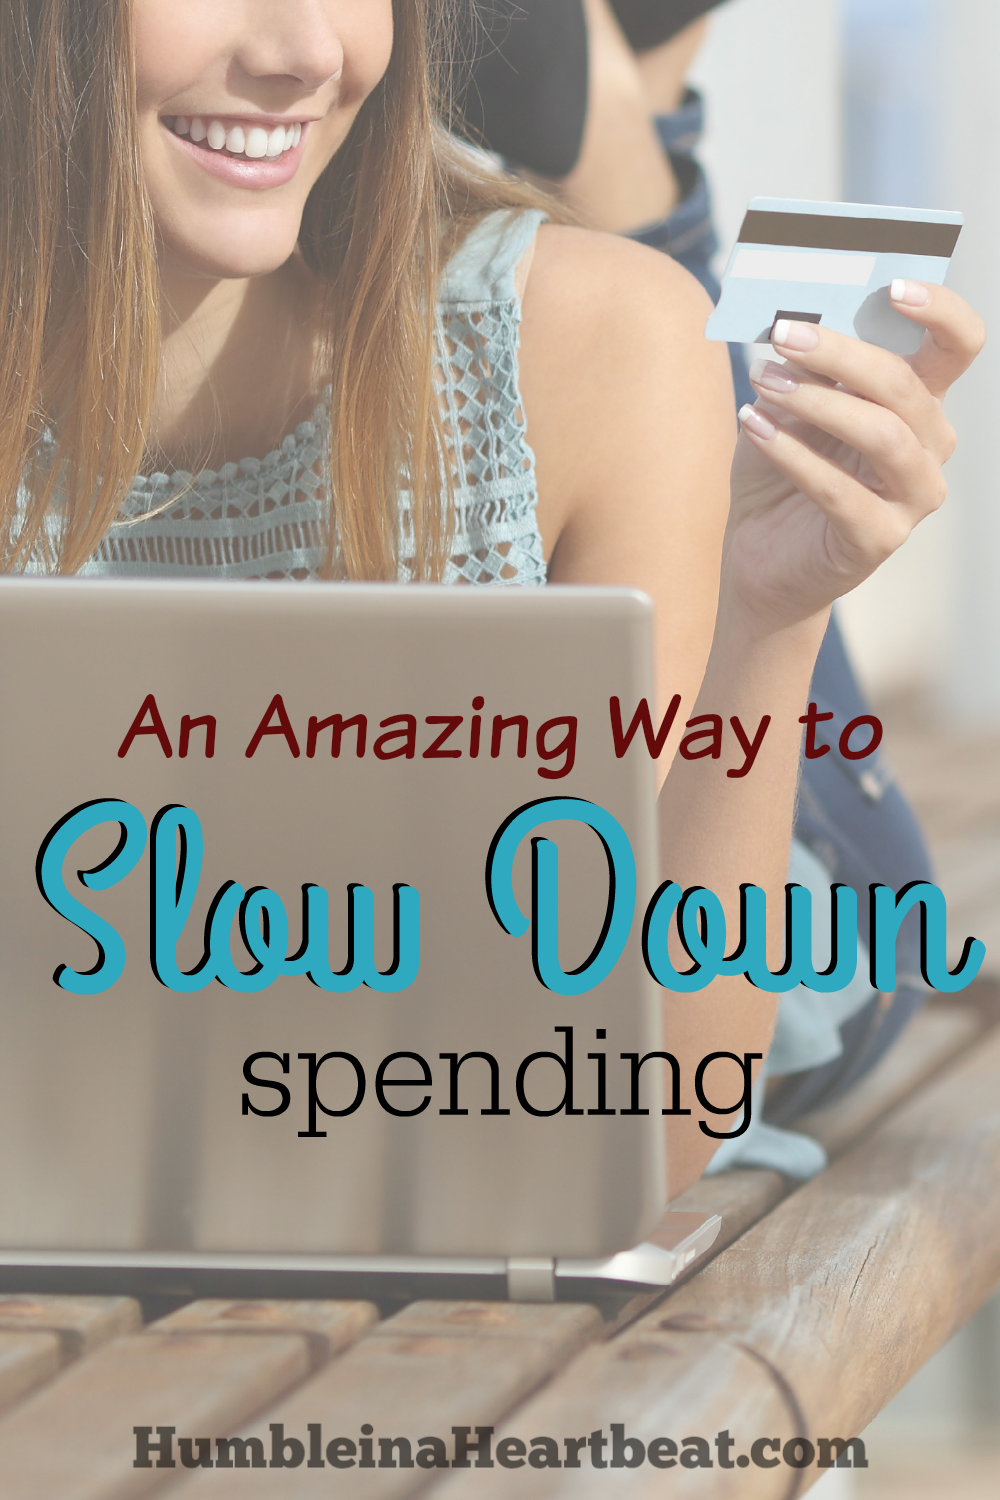 Saving money doesn't have to be hard. In fact, there are many ways to save money that are easy and fun. Here are more than 90 painless ways to save money.